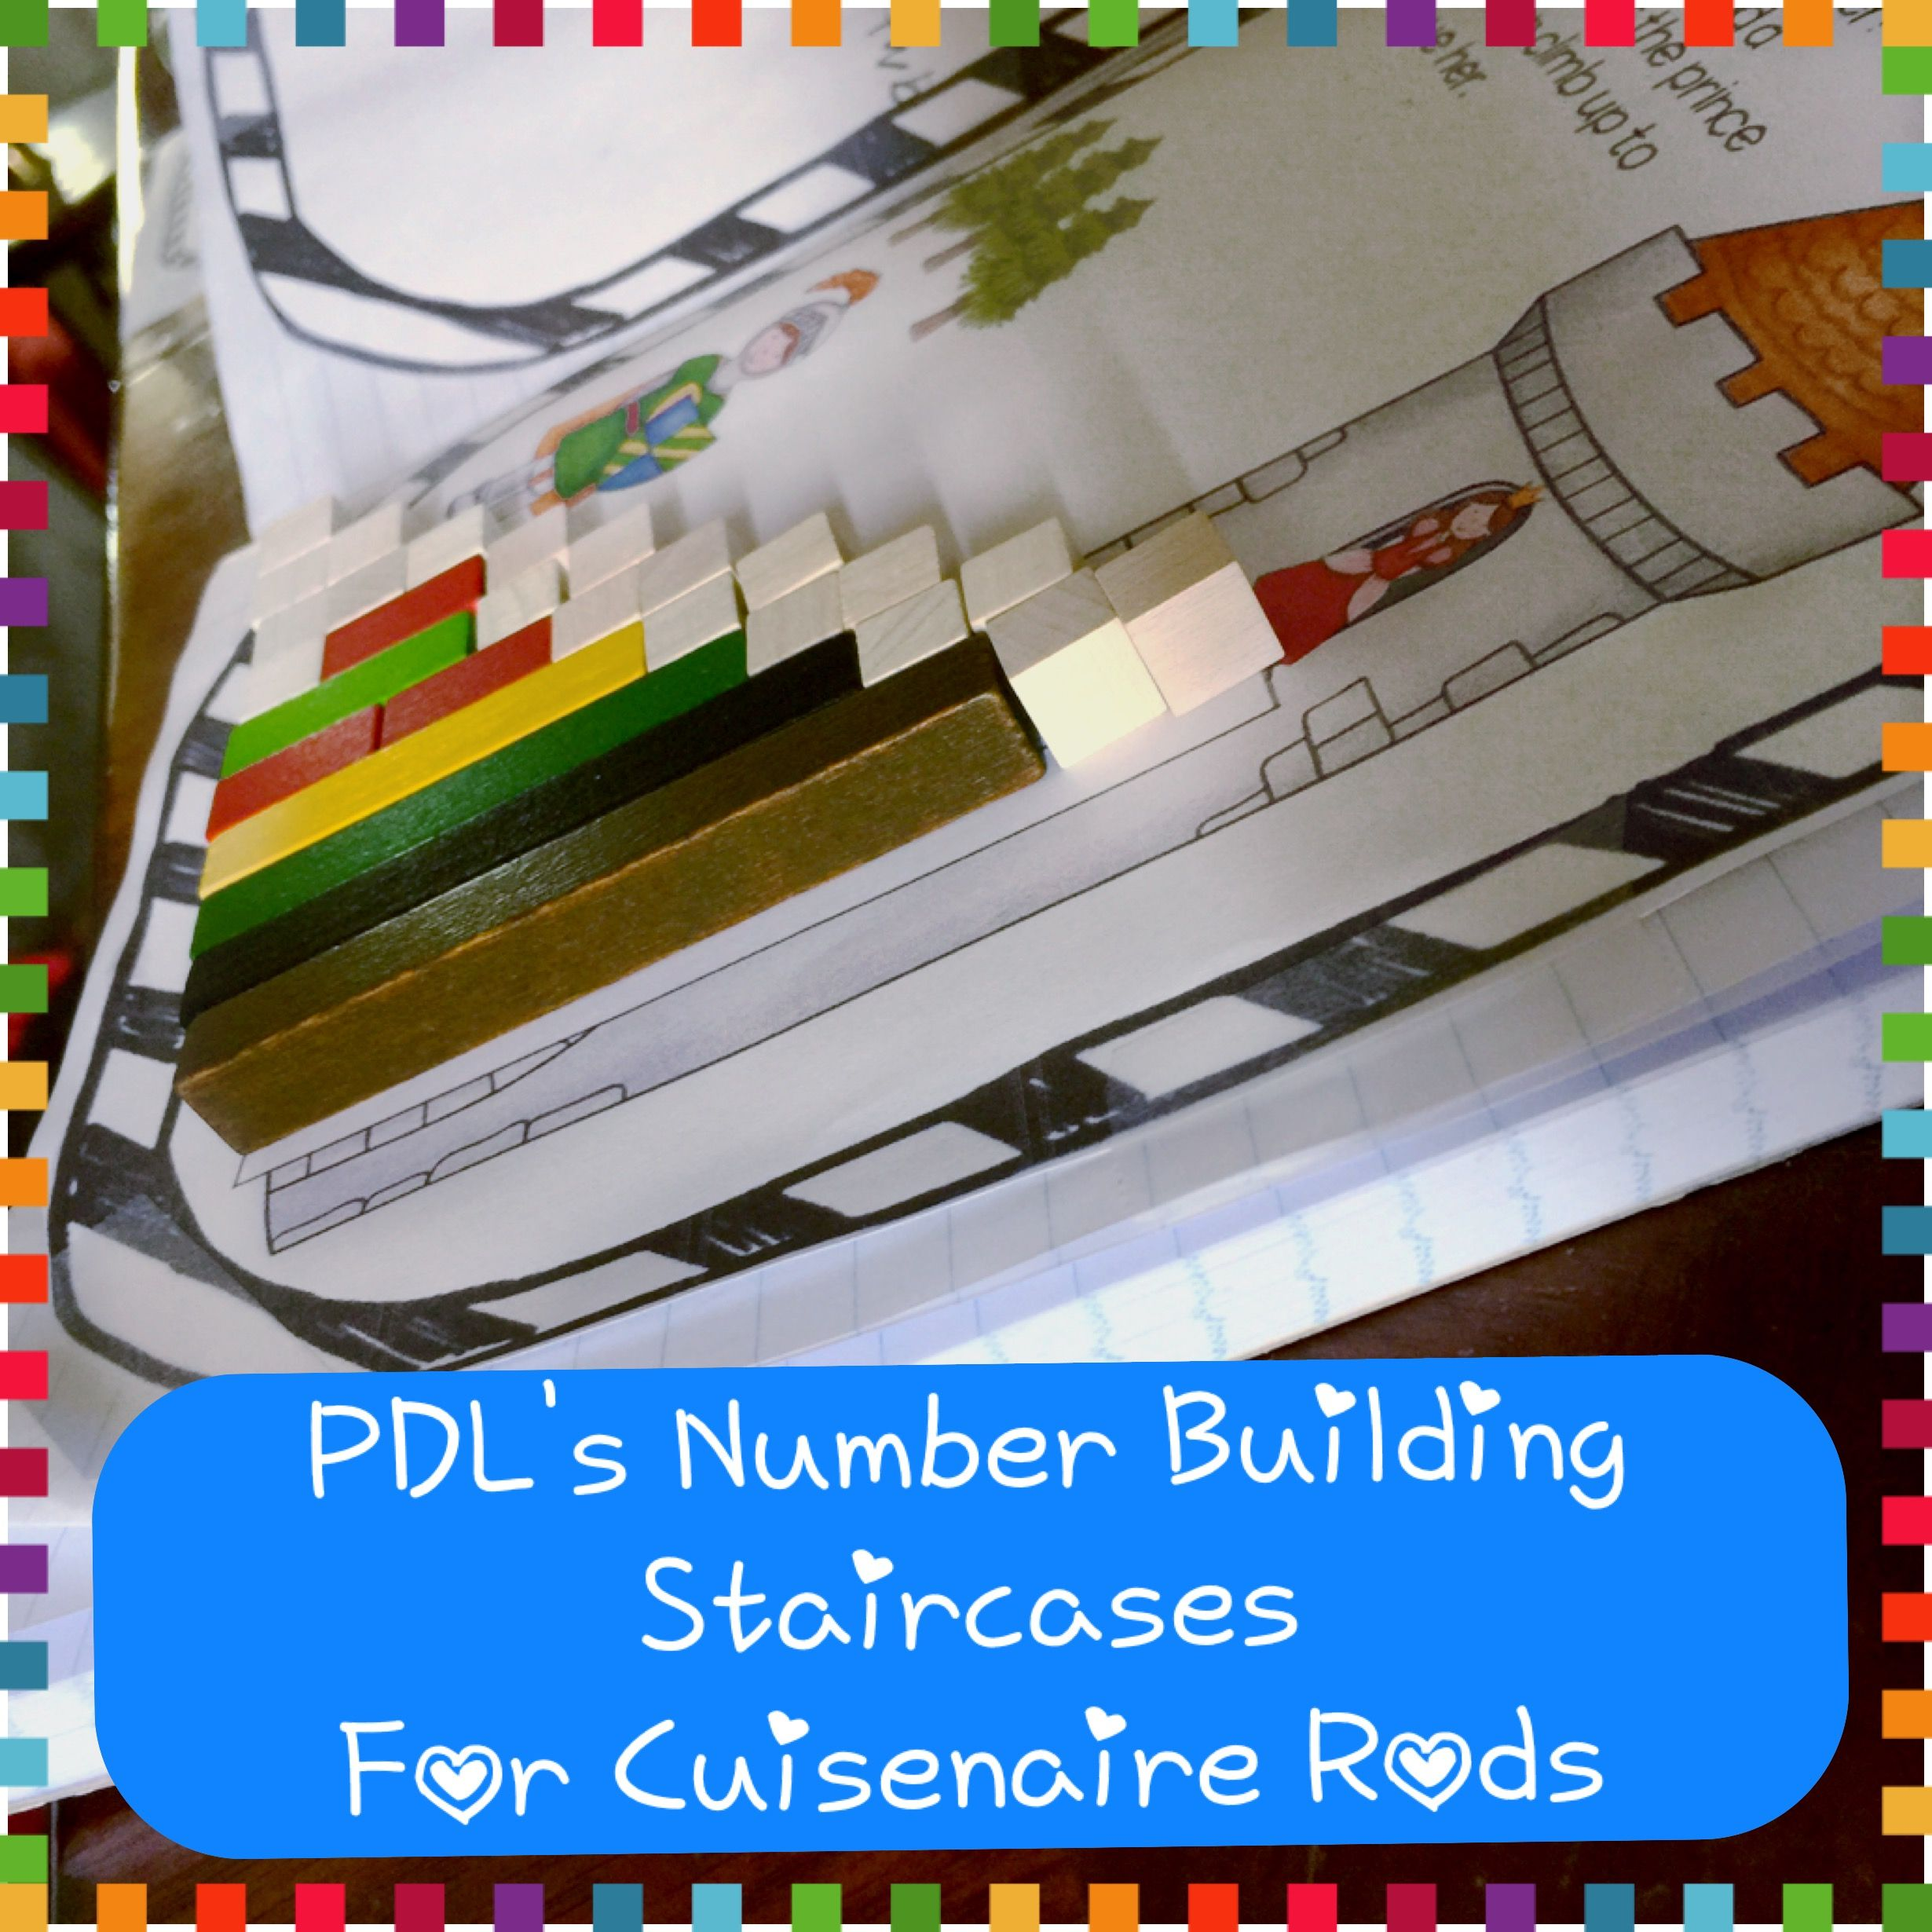 Pdl S Number Building Staircases For Cuisenaire Rods